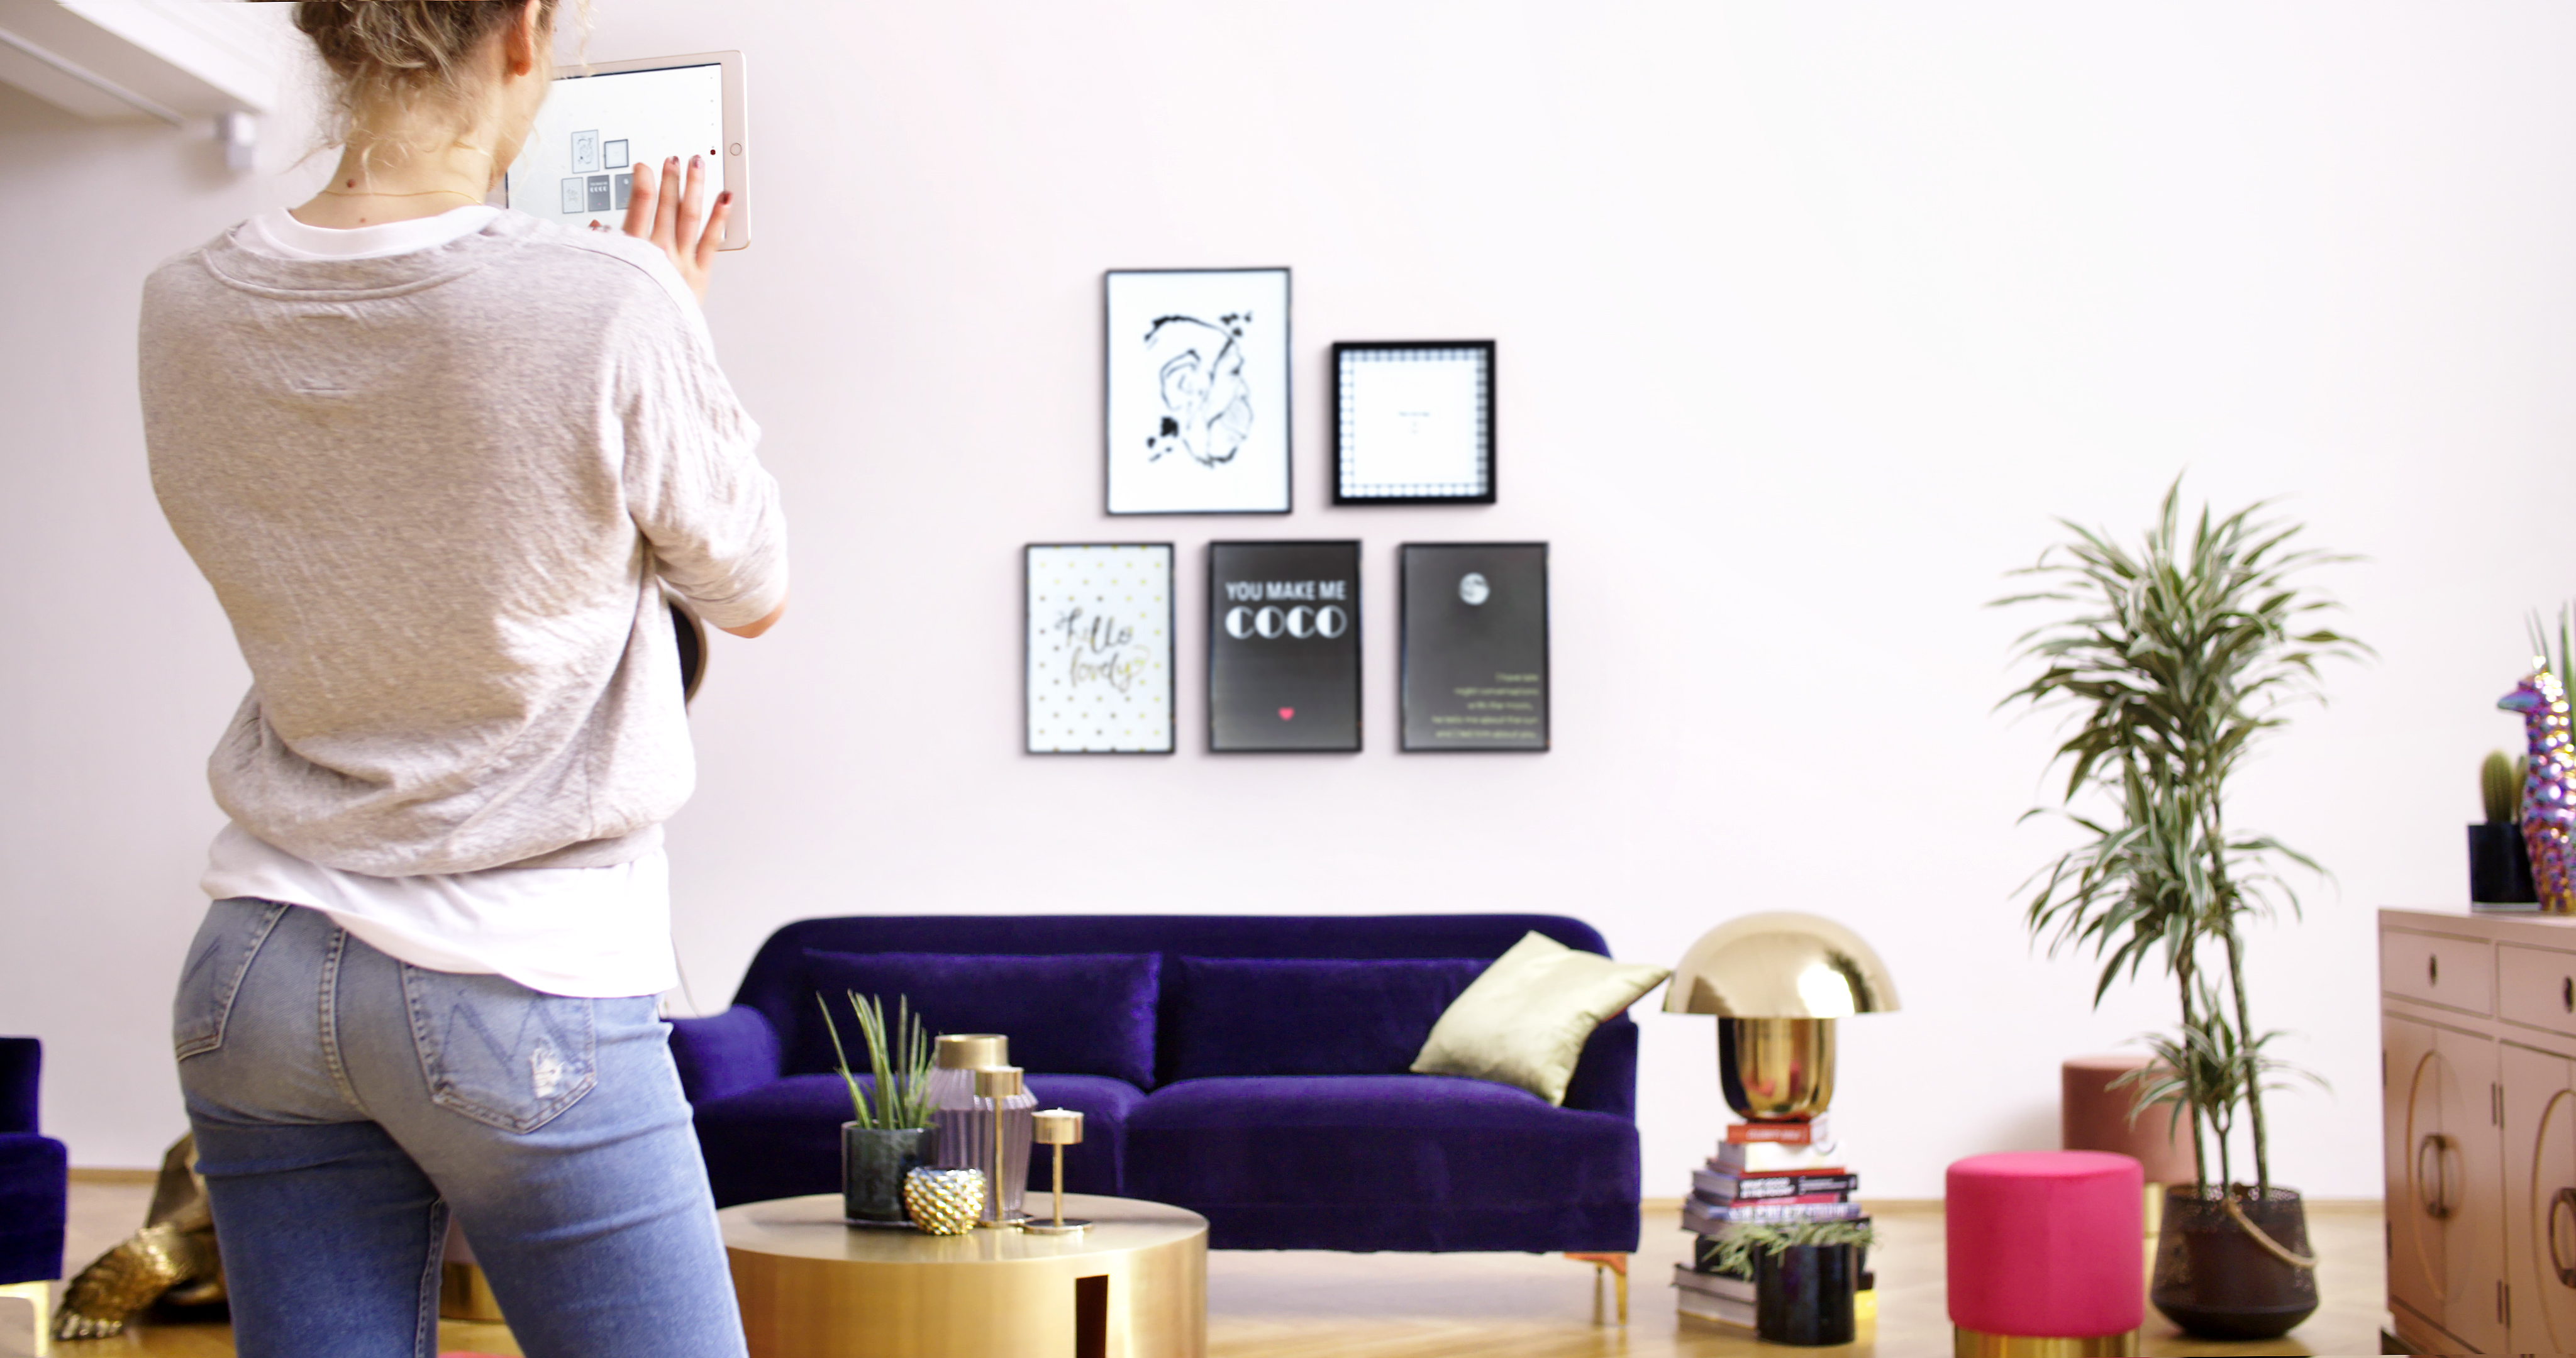 21D Roomdesigner App   21D Planung und Augmented Reality